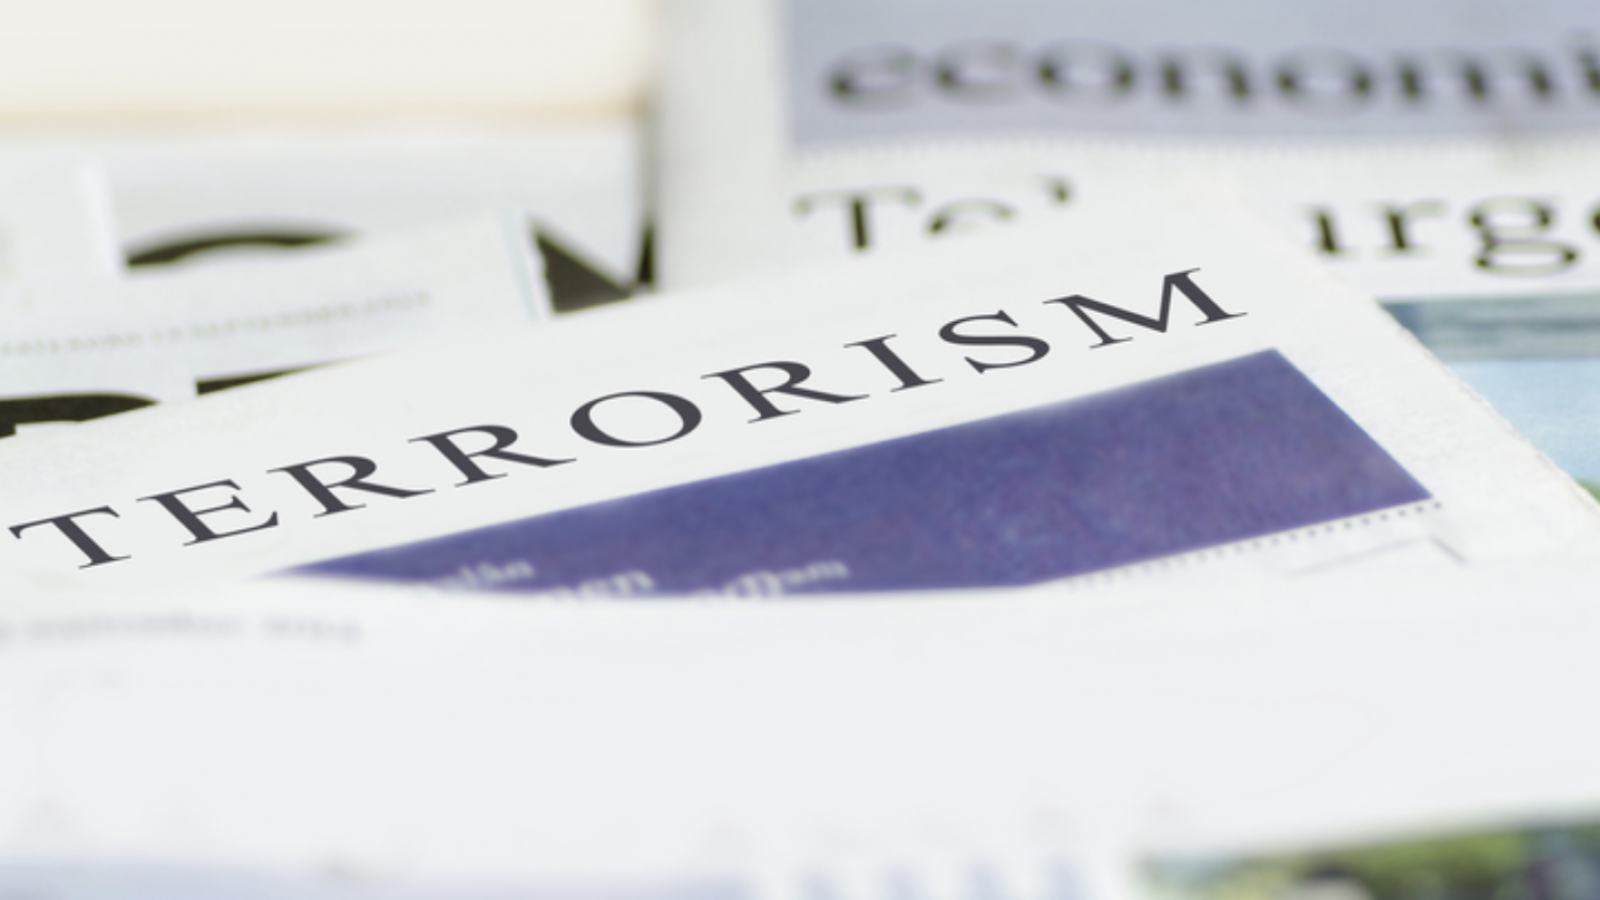 Photo of a newspaper with the headline 'Terrorism' in all caps.